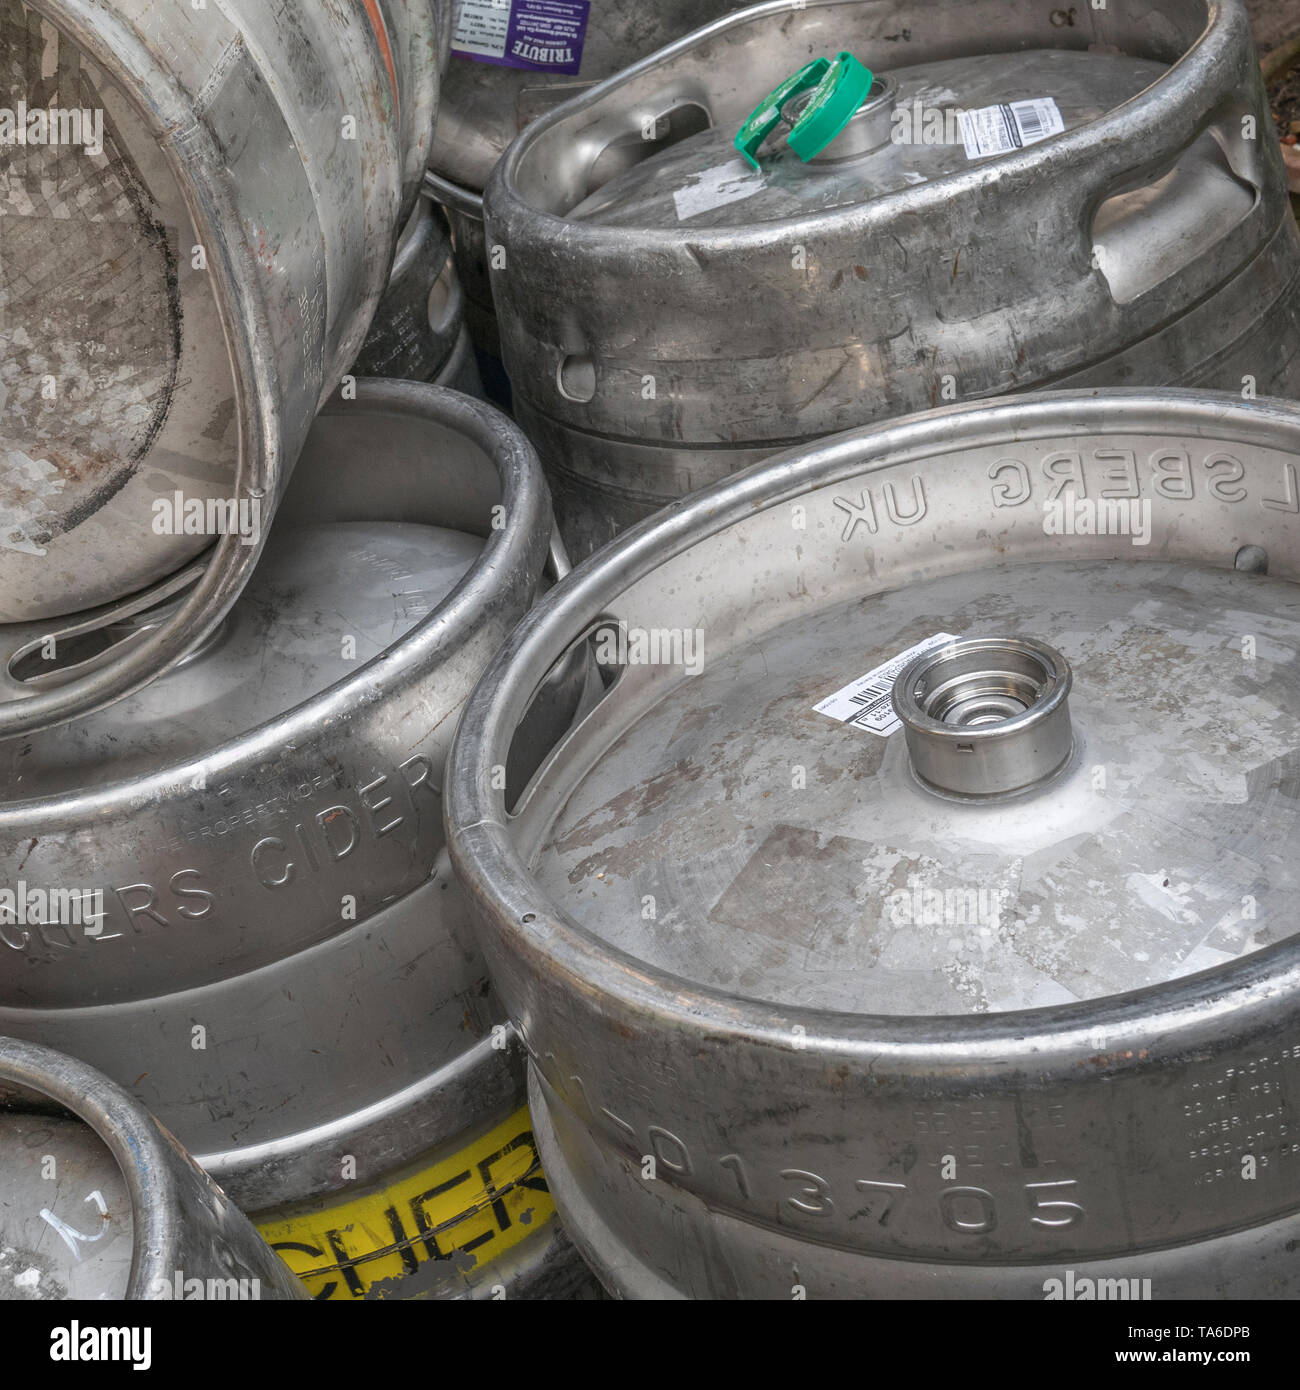 Aluminium or stainless steel beer barrels / kegs (Names of branded products are visible on labels so Editorial use). Stock Photo